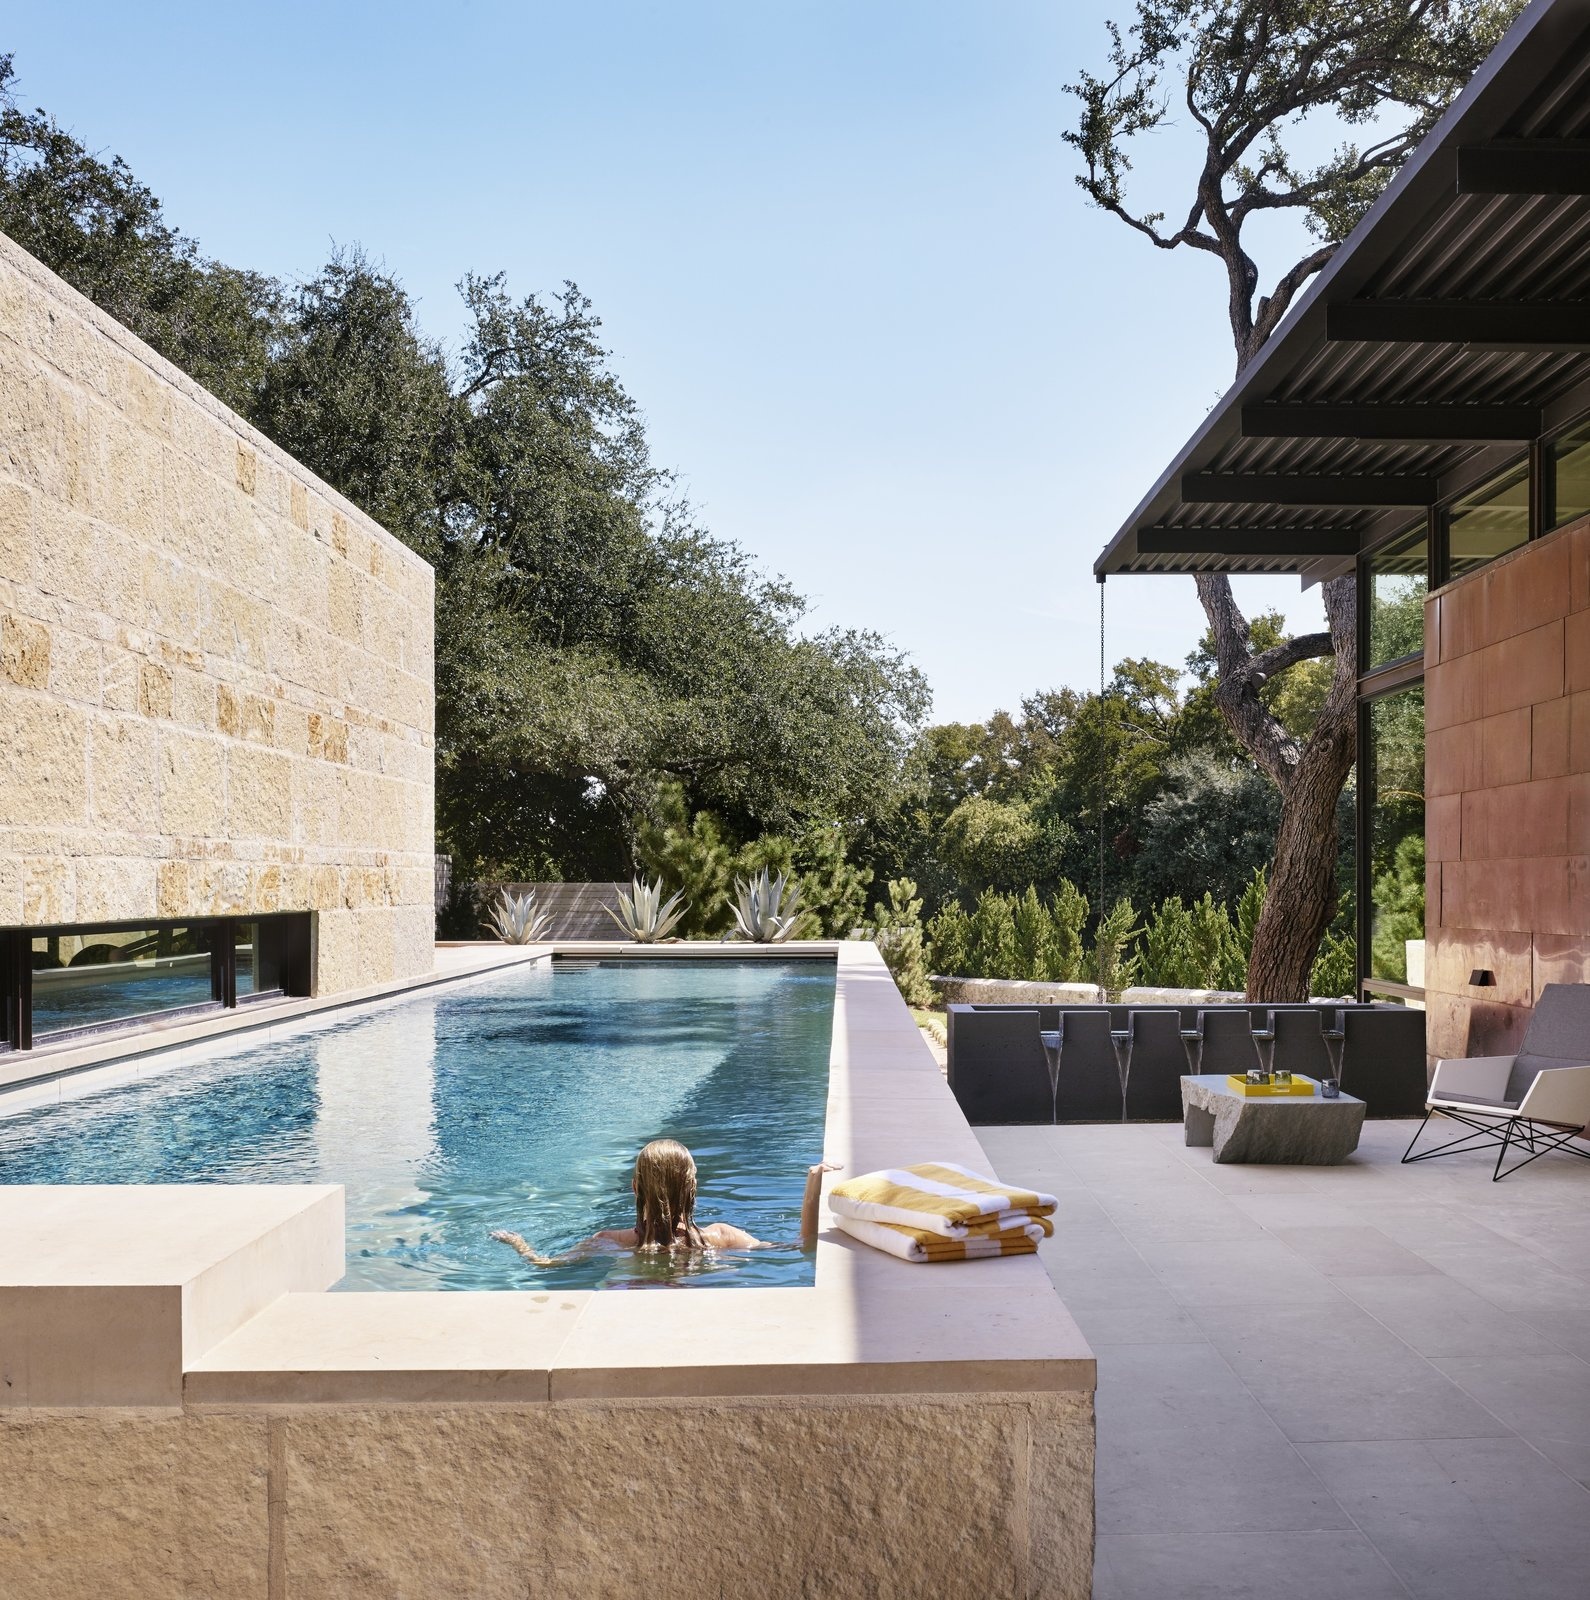 """Outdoor, Lap, Hardscapes, Shrubs, Landscape, Horizontal, Swimming, Trees, Small, Concrete, Back Yard, Small, Hanging, and Stone Throughout the day, light animates the limestone walls to various effects. """"As the sun rotates around and is more oblique to the texture of the stone, it casts these wonderful shadows on it,"""" says Raike. """"And you just get a real appreciation for the texture of the stone and the richness of the colors in it.""""  Best Outdoor Photos from RM-3 Episode Five: Clams"""